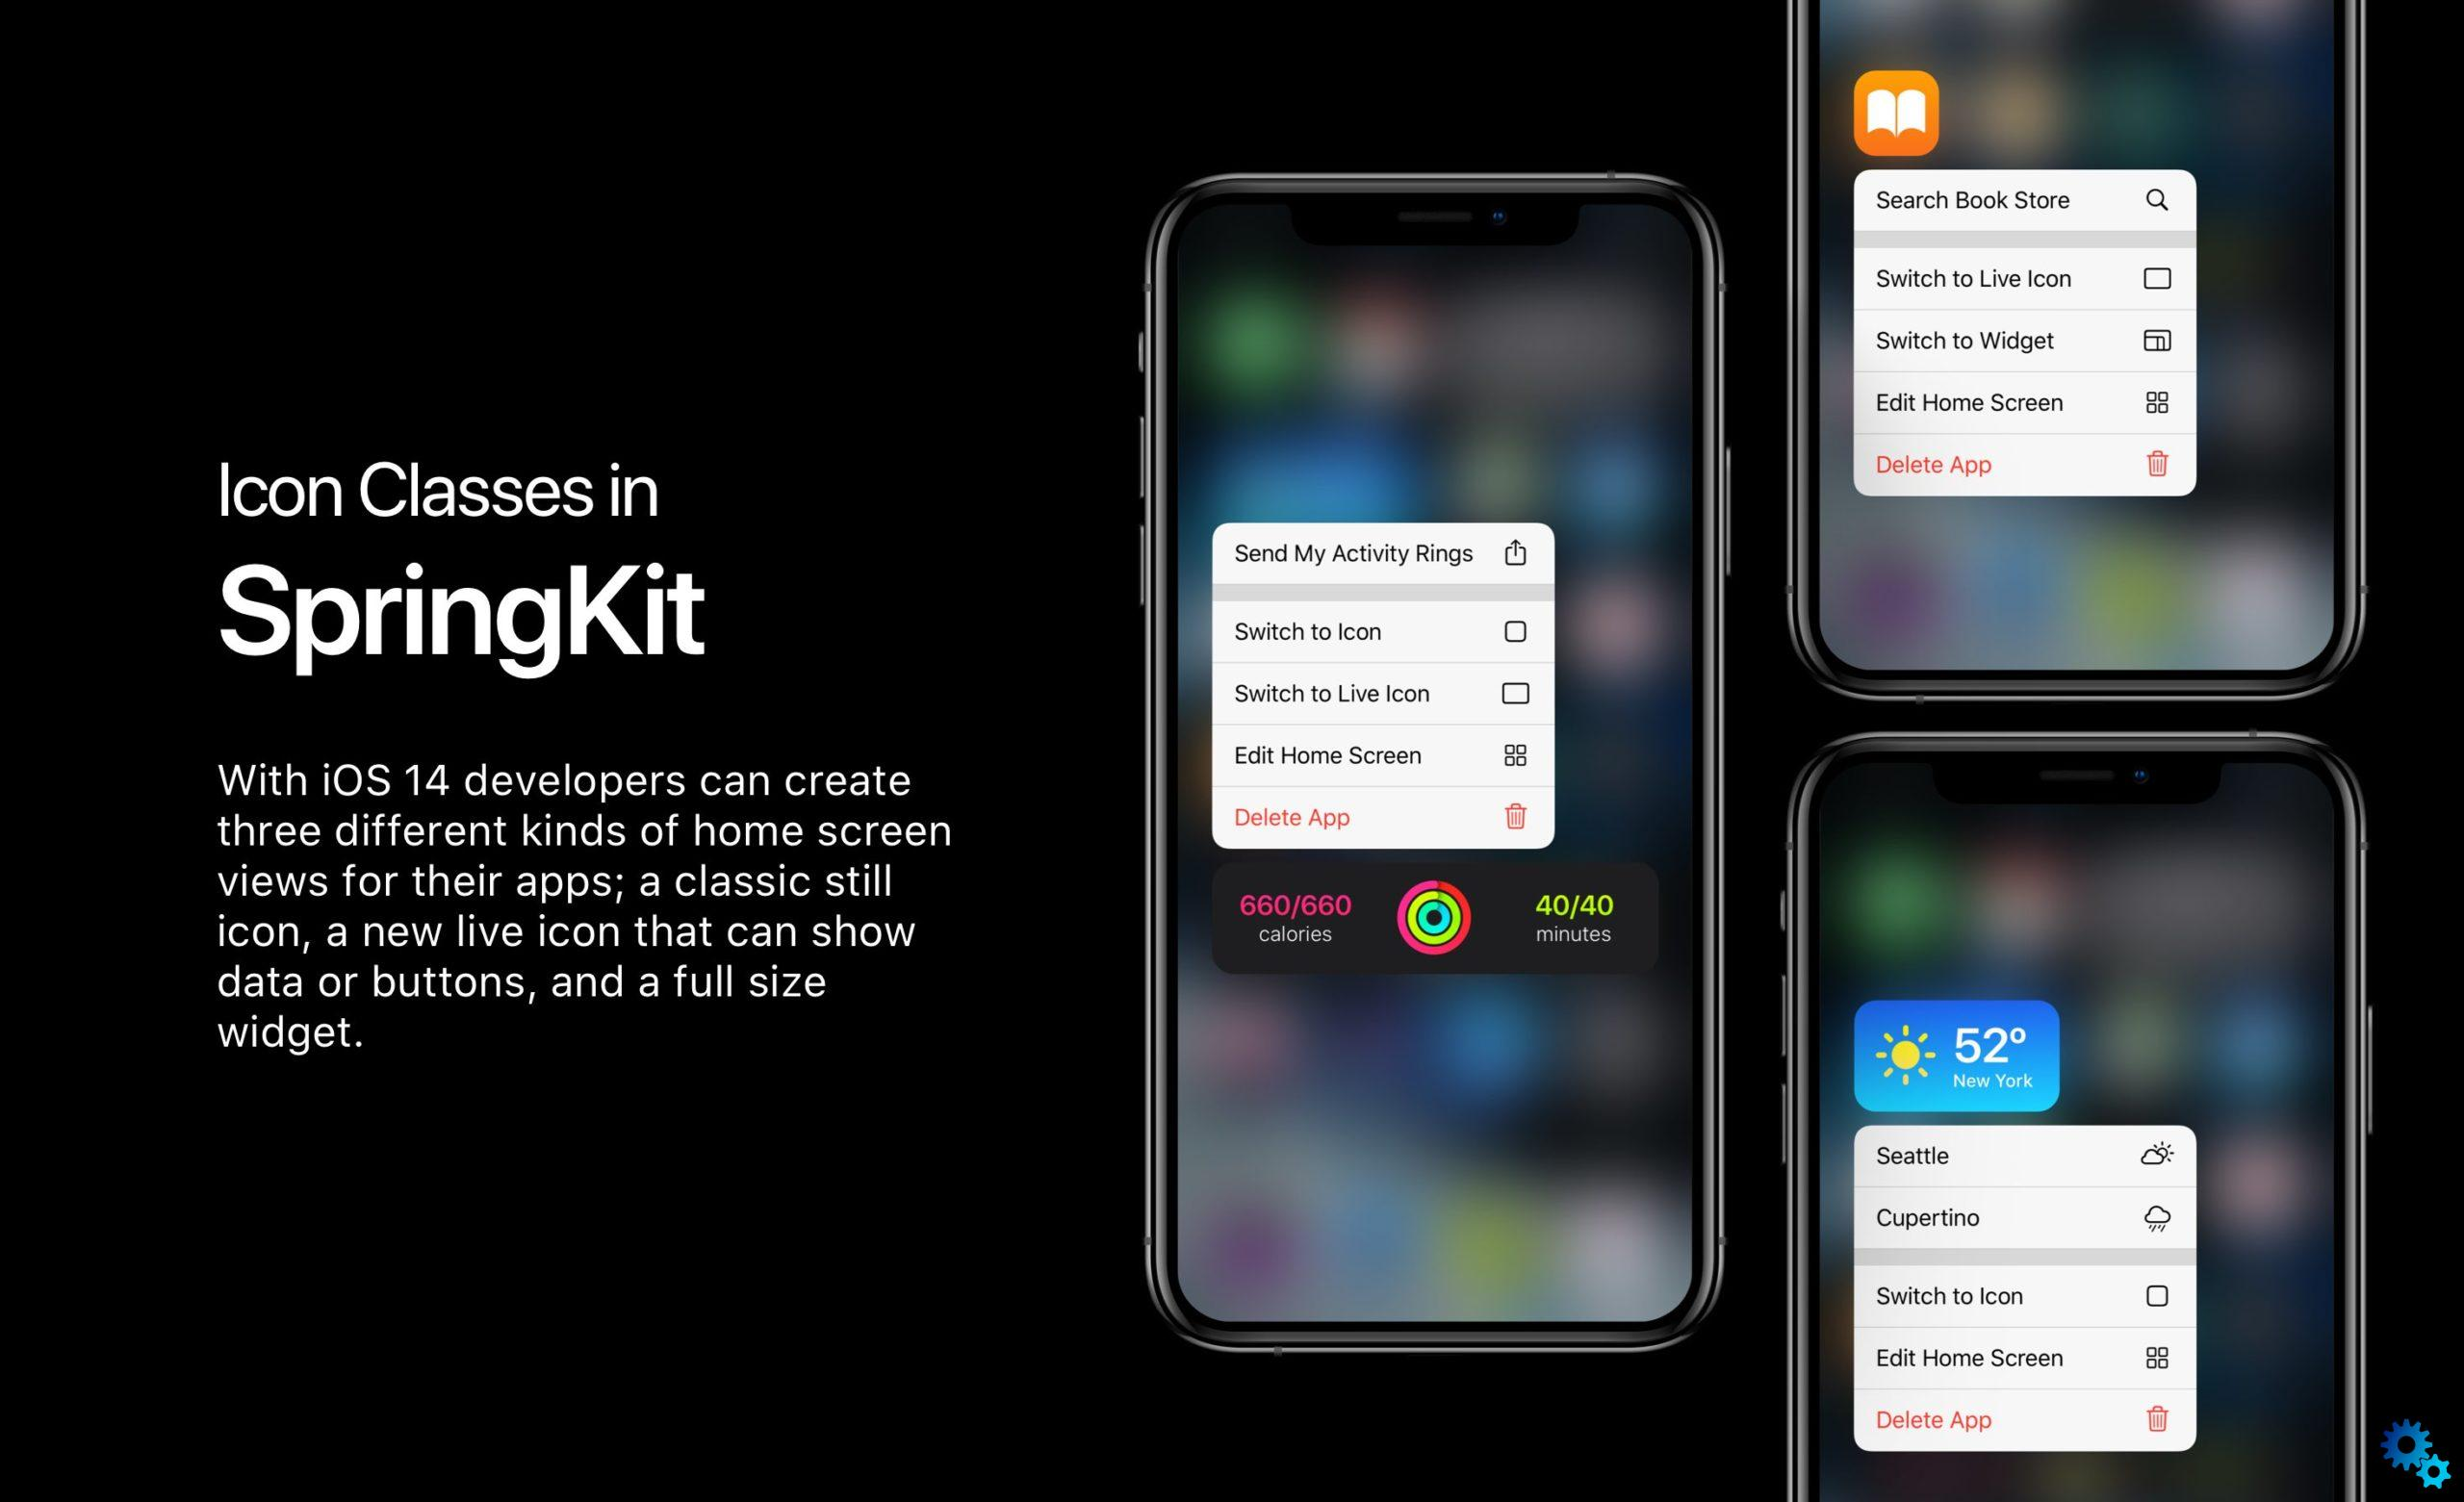 This is likely to be the home screen of your iPhone in iOS 14